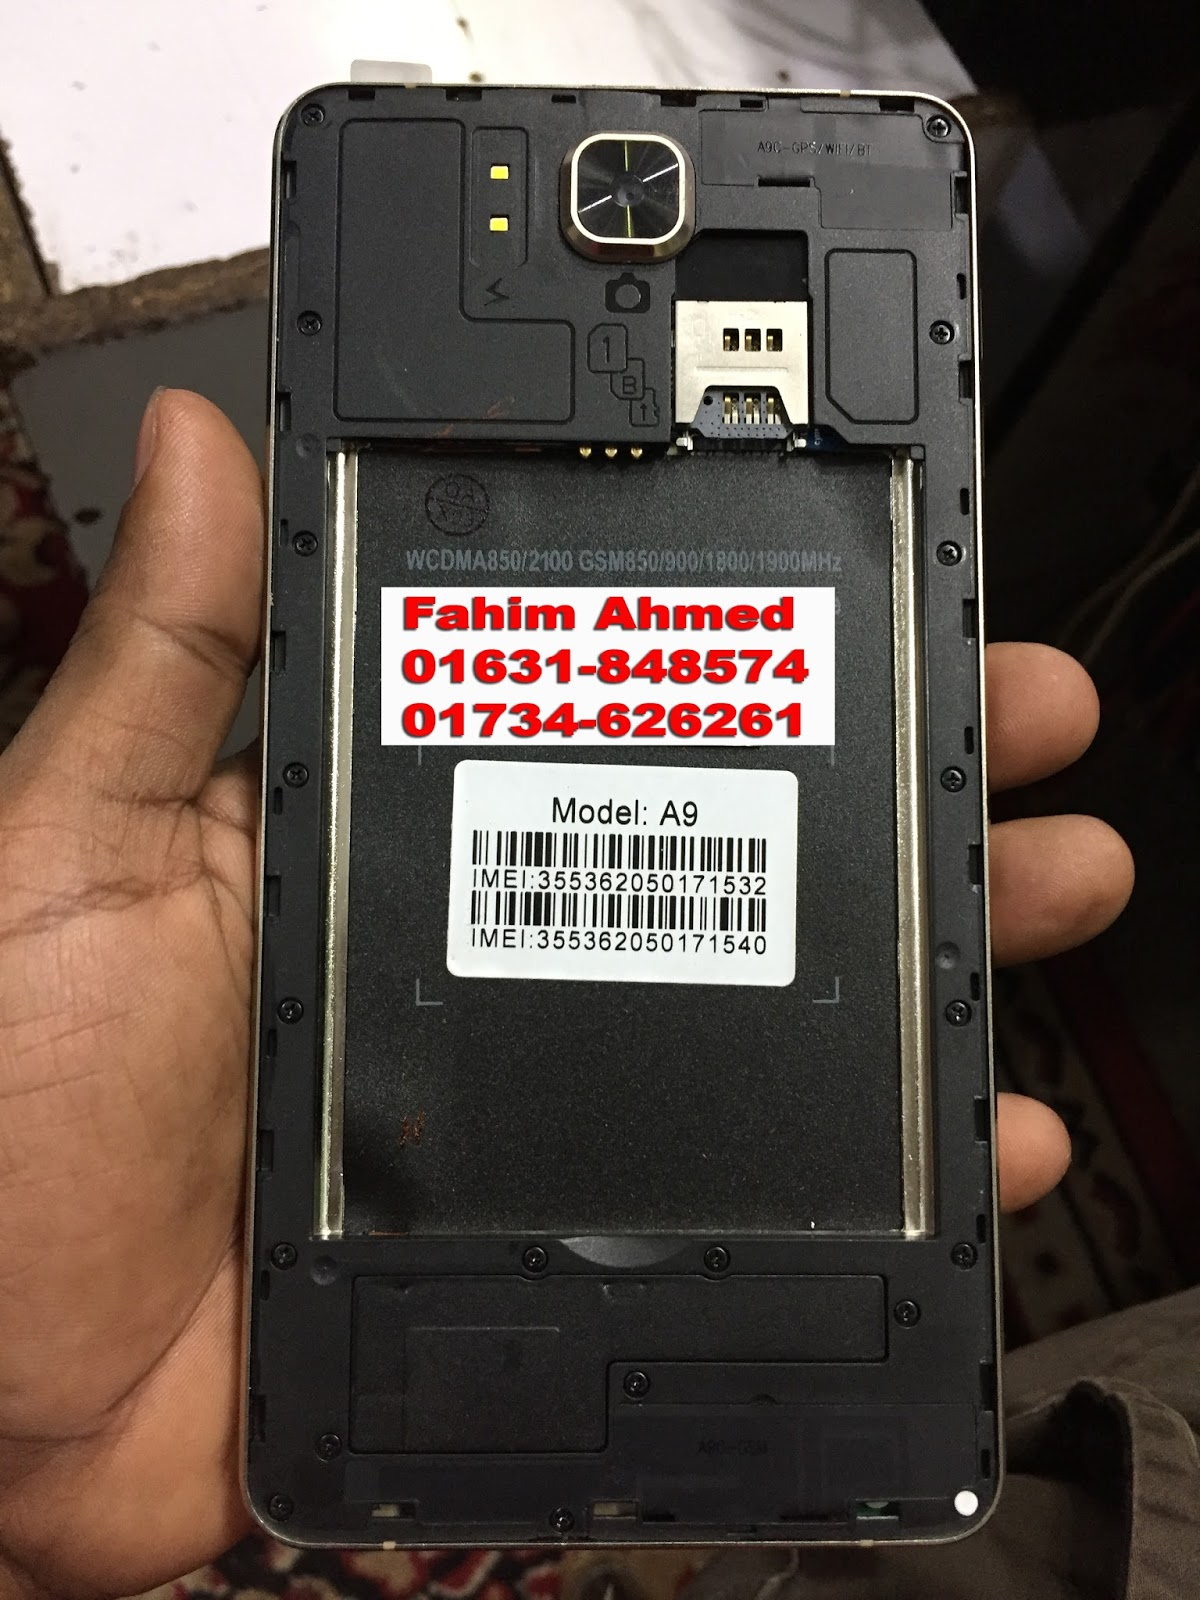 SAMSUNG A9 OR X BO A9 CLONE FLASH FILE MT6580 6 0 OFFICIAL FIRMWARE TESTED BY FAHIM AHMED